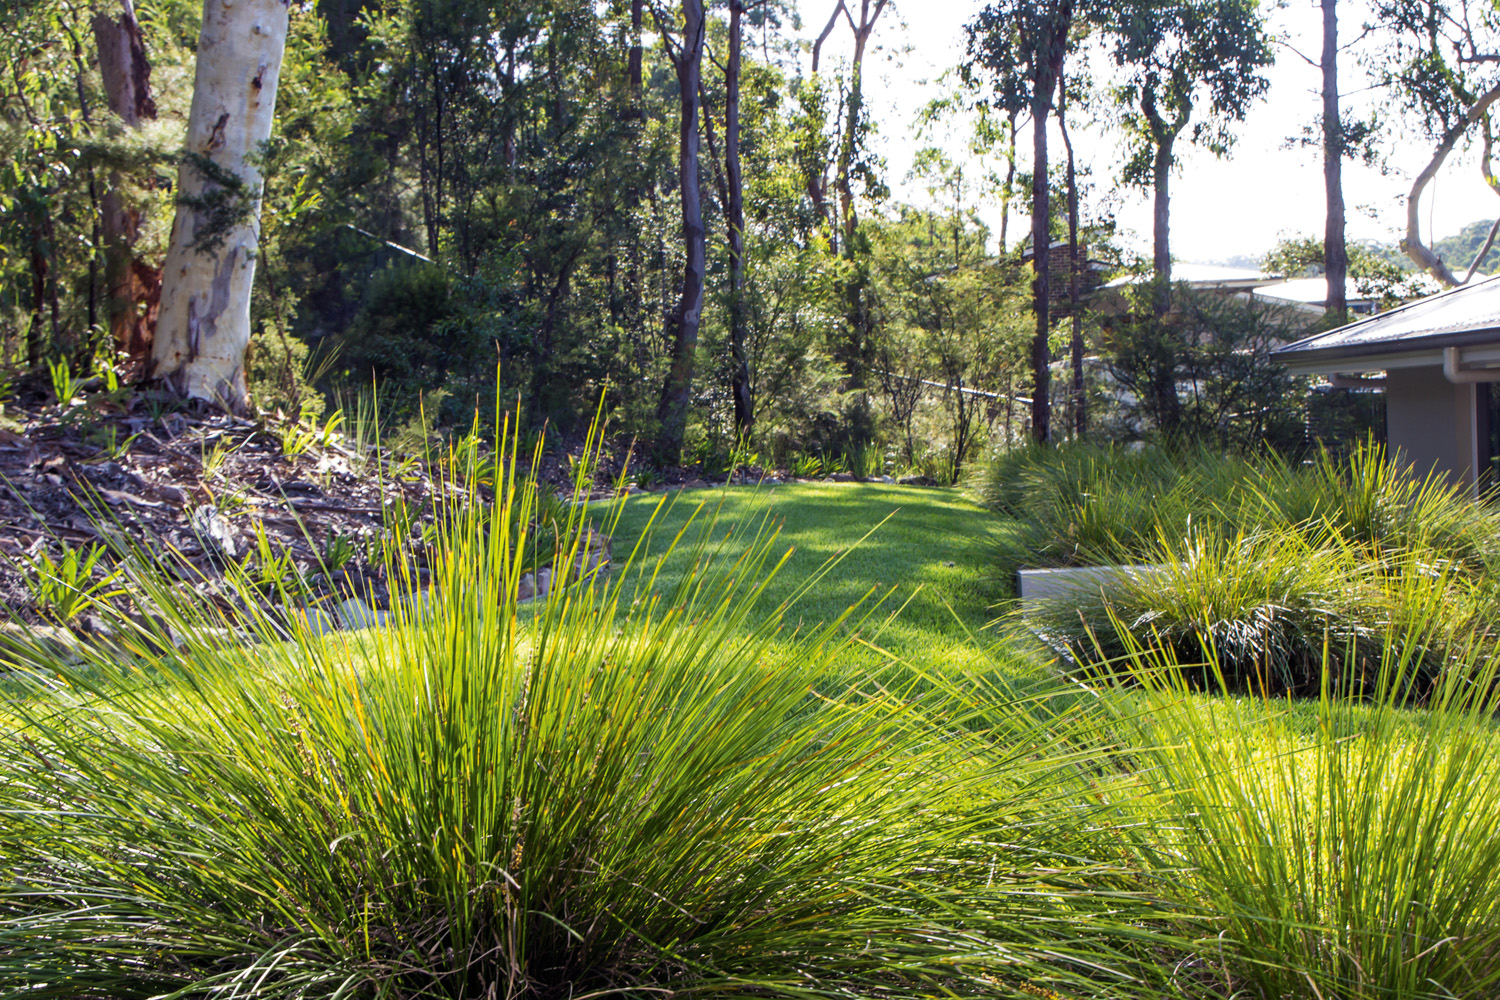 The garden visually connects with the bushland but still achieves the required policy controls in a bushfire-prone area